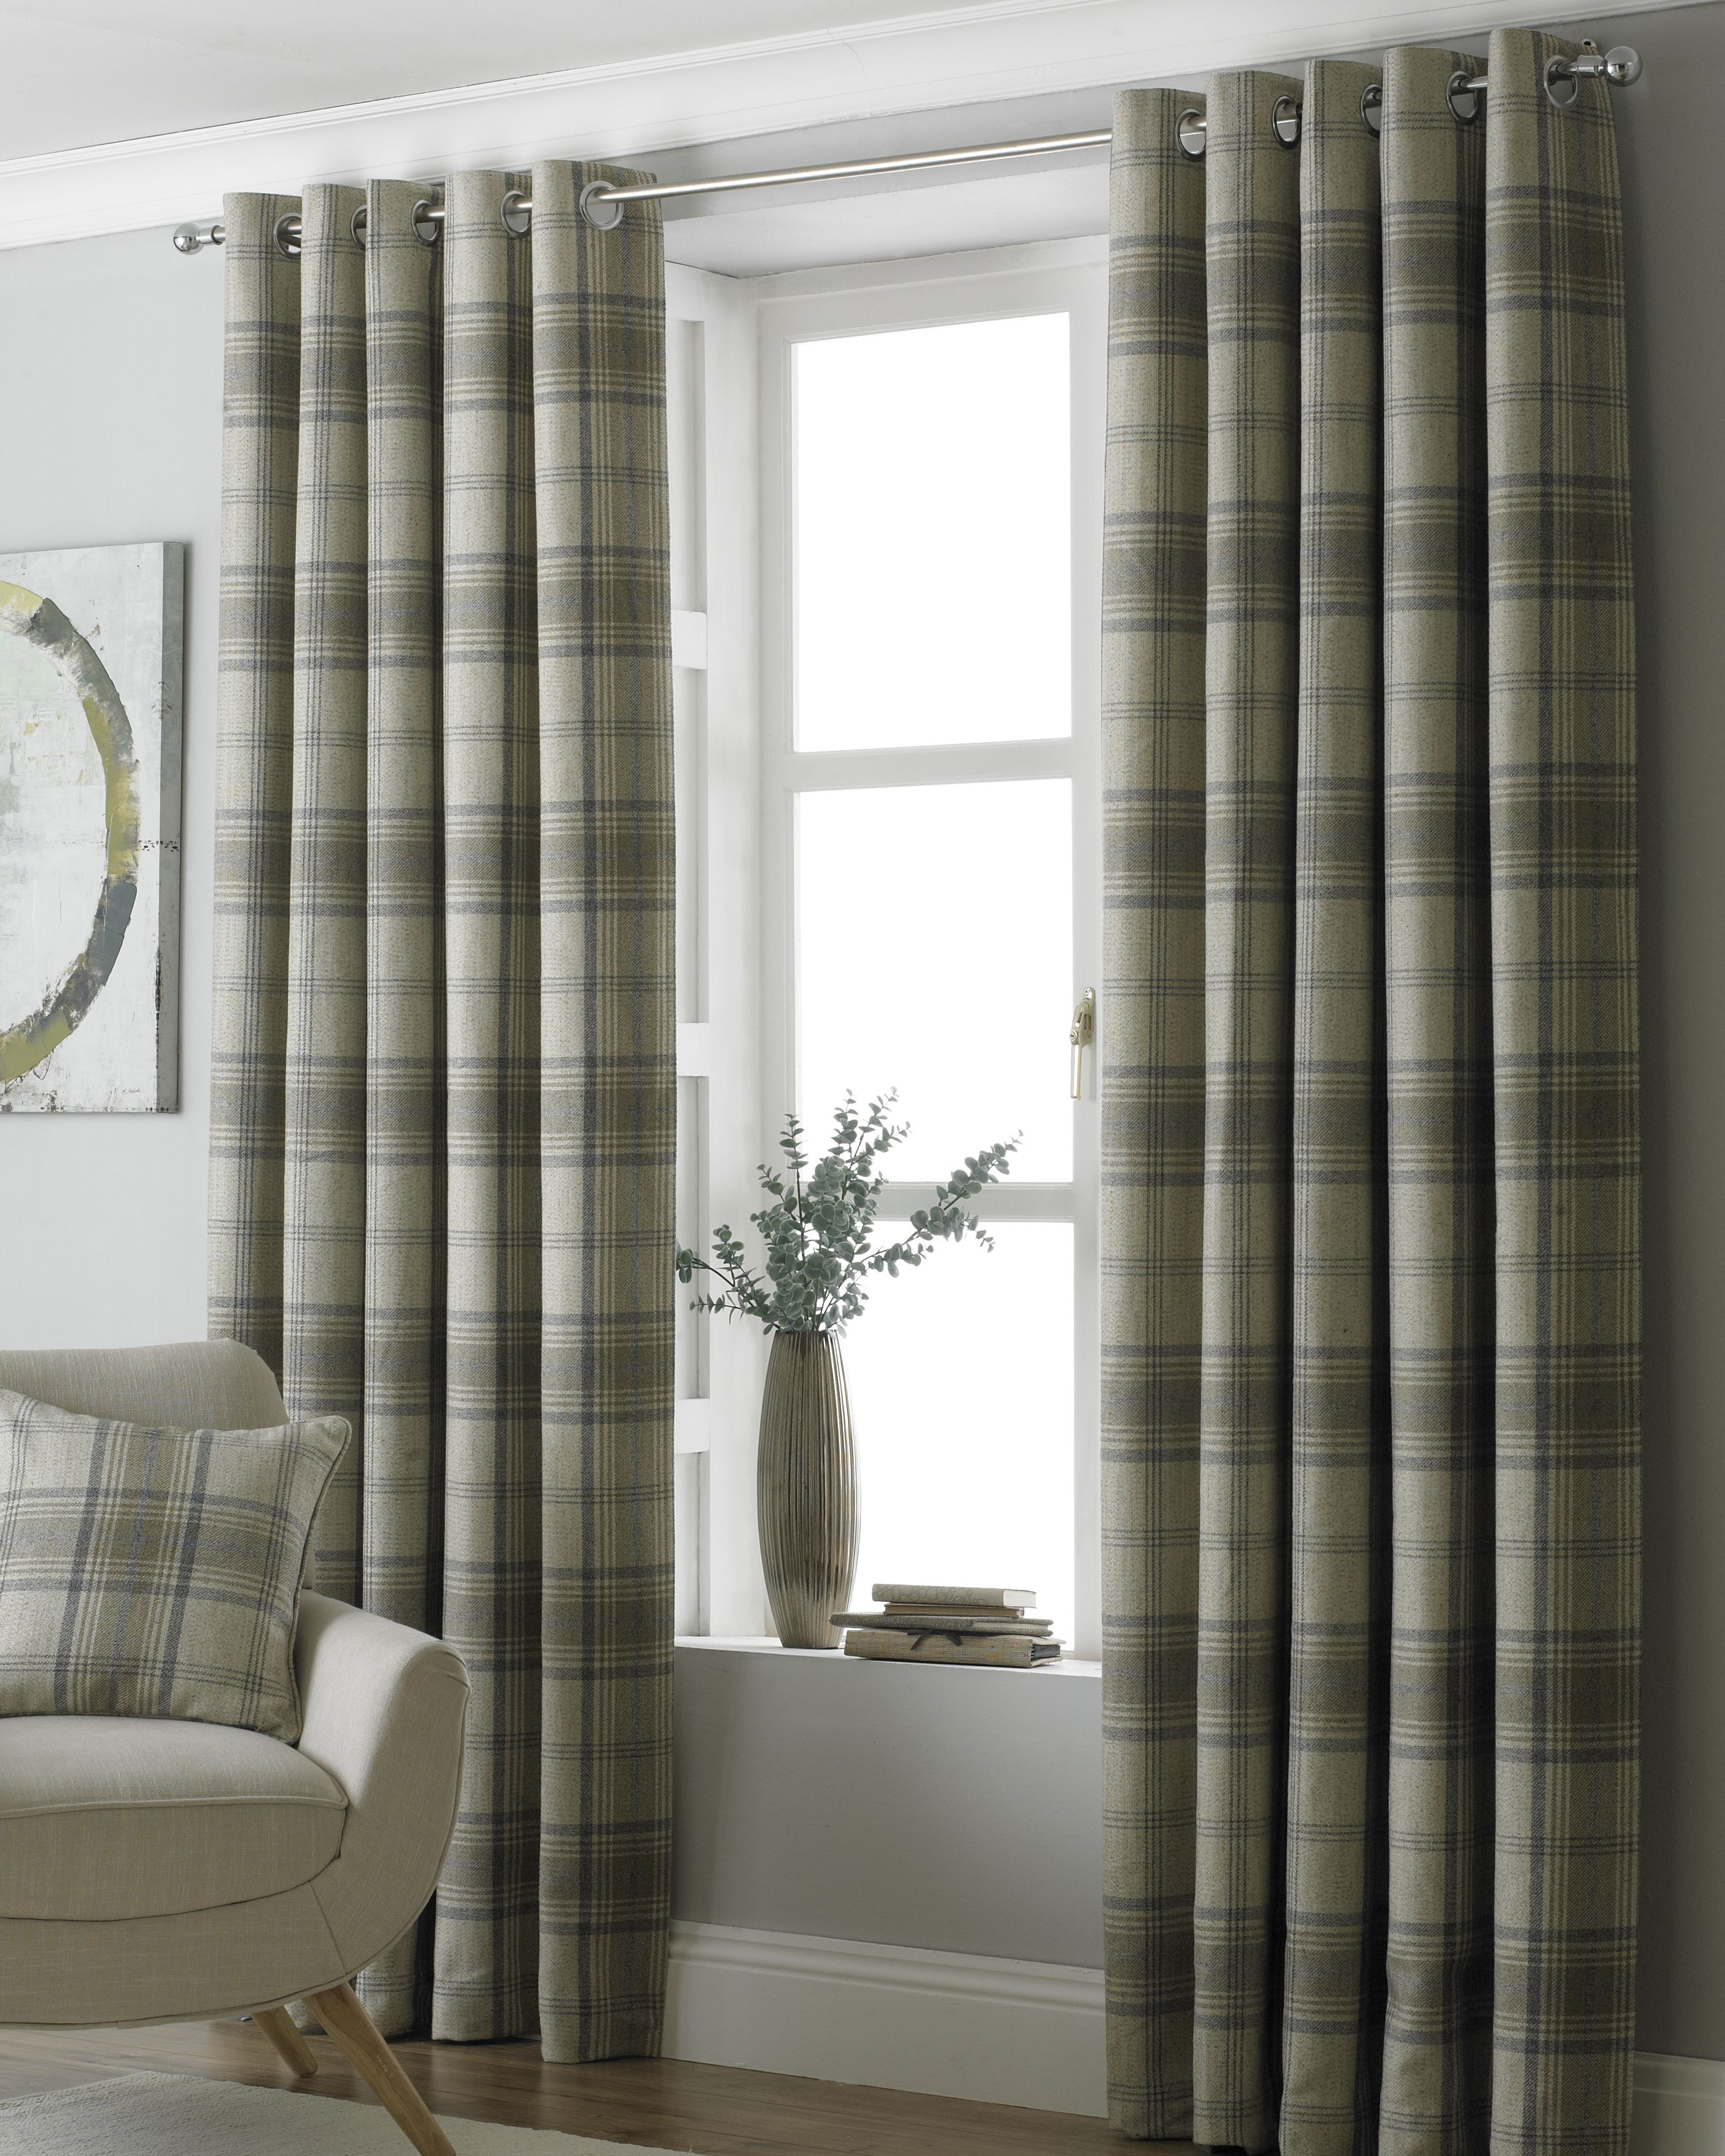 Aviemore Wool Effect Eyelet Curtains in Natural